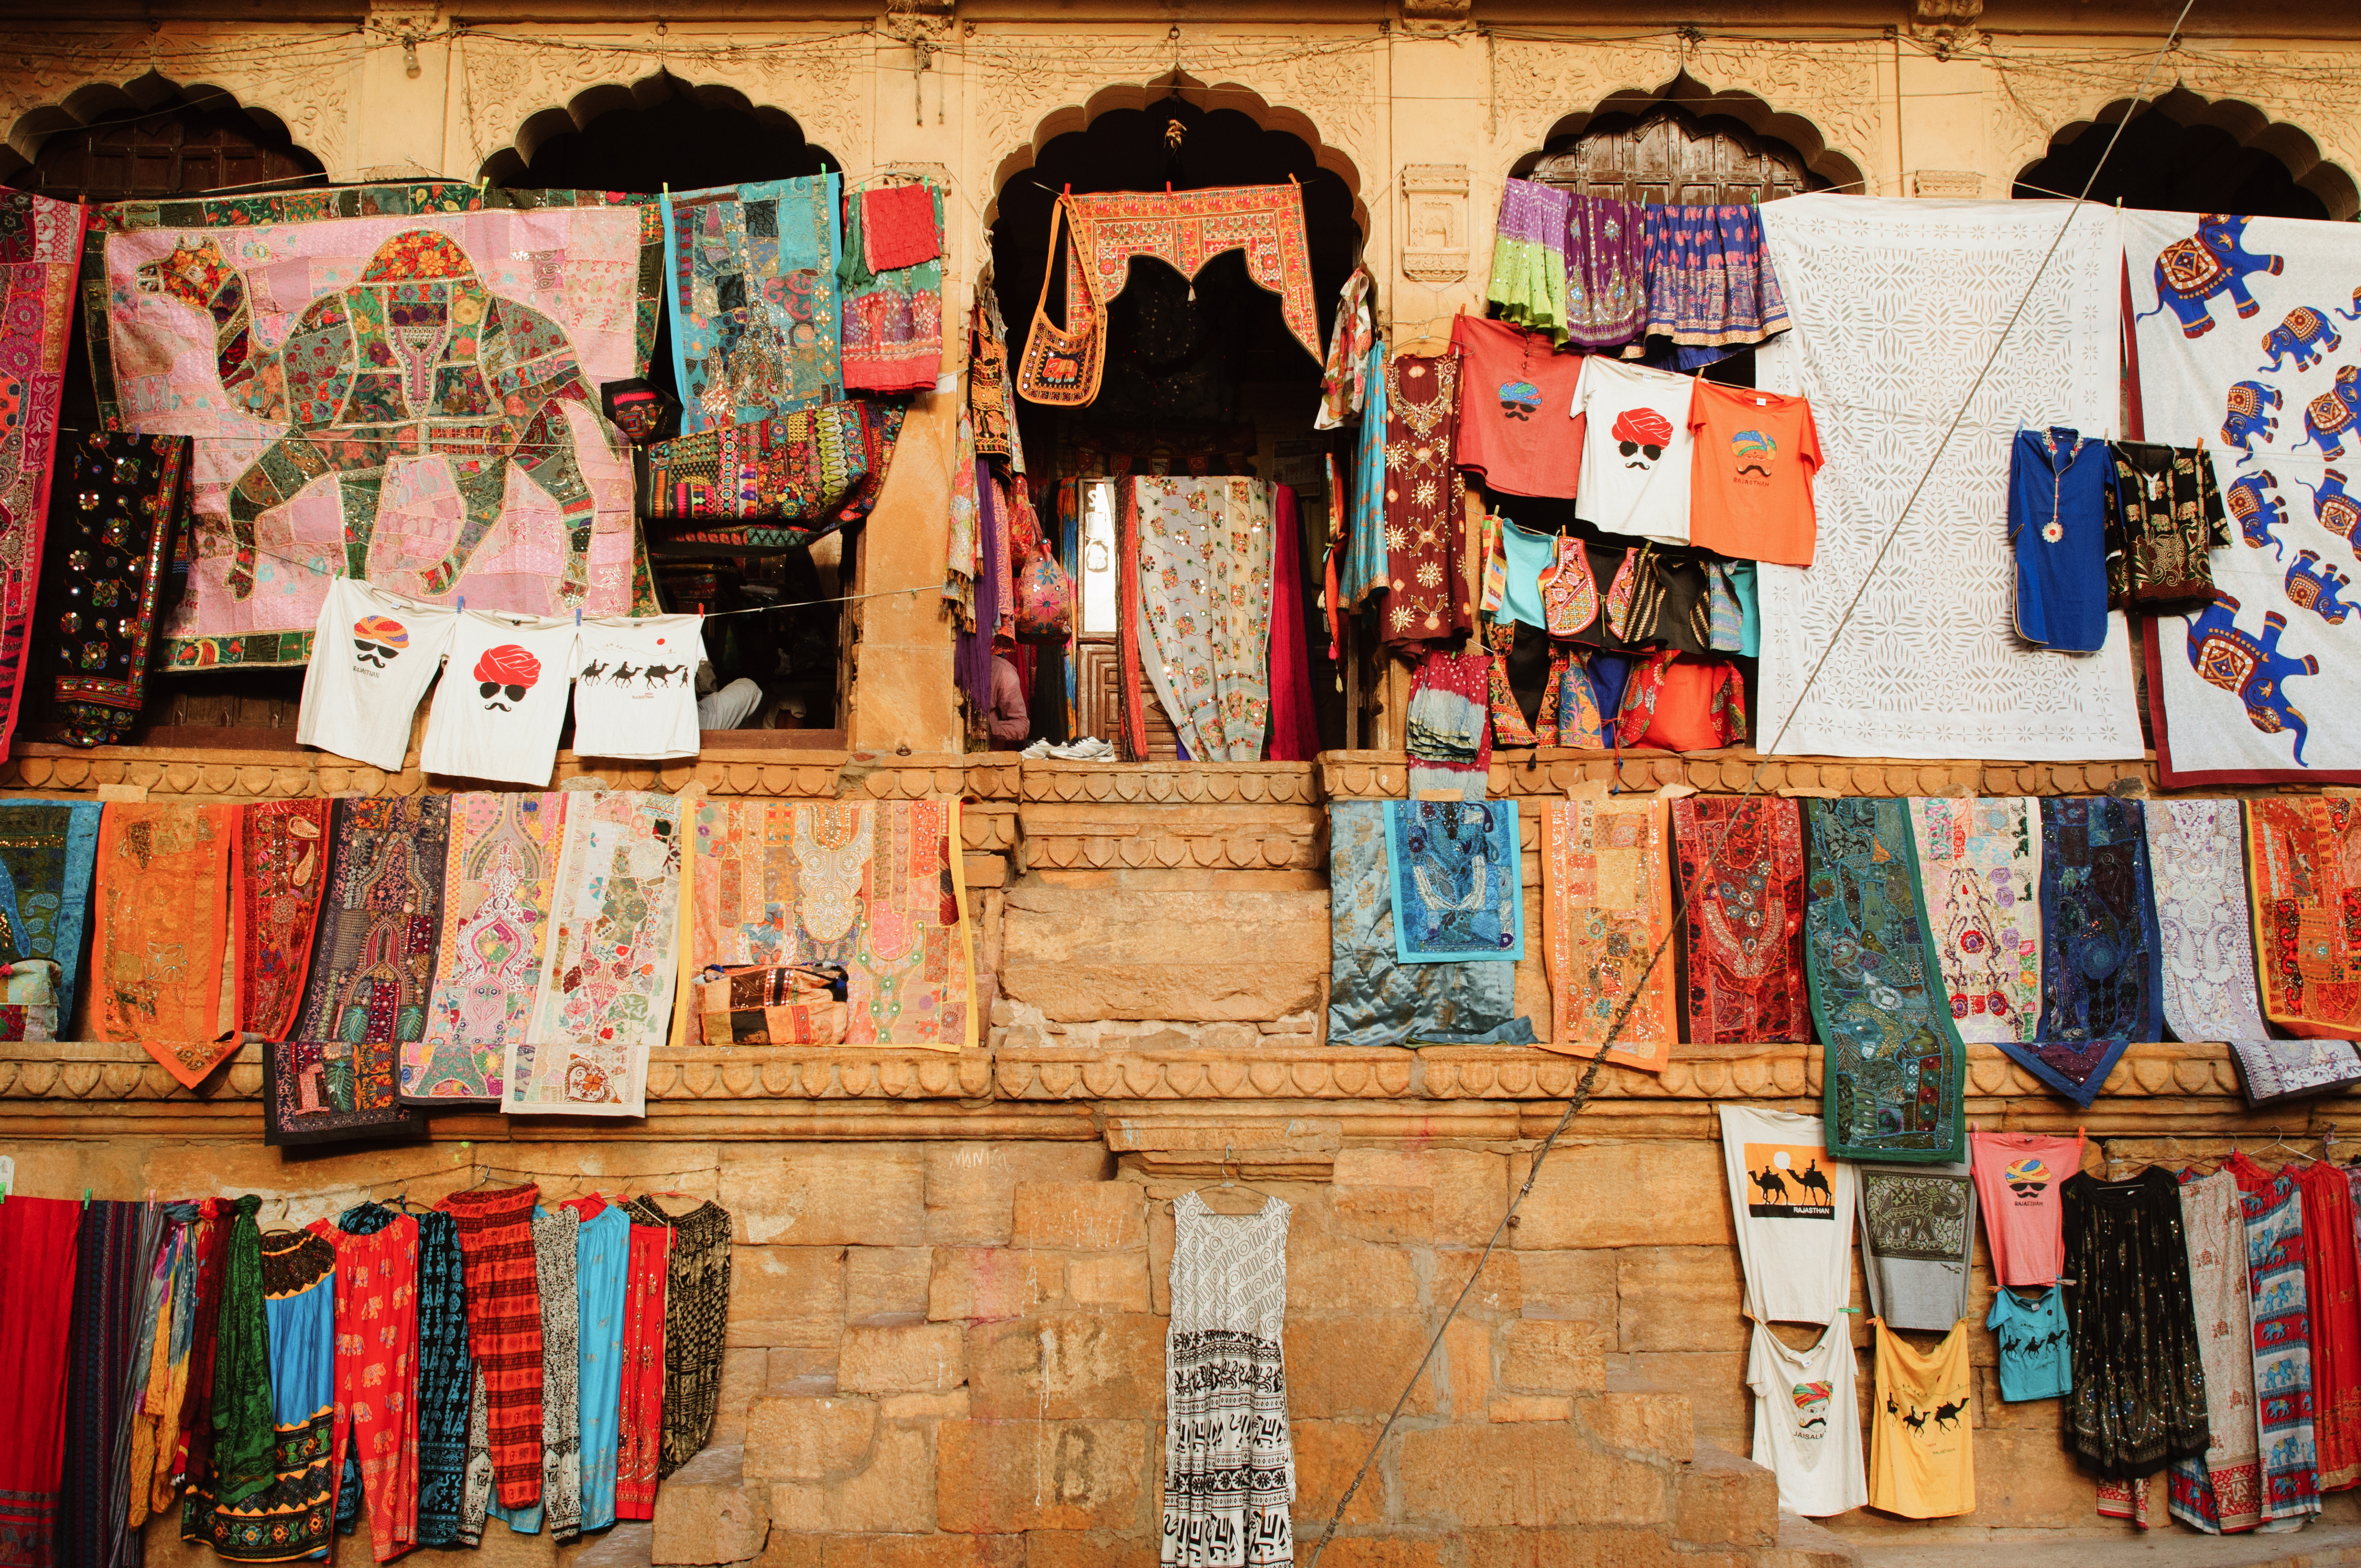 hanged assorted-color-and-print textiles